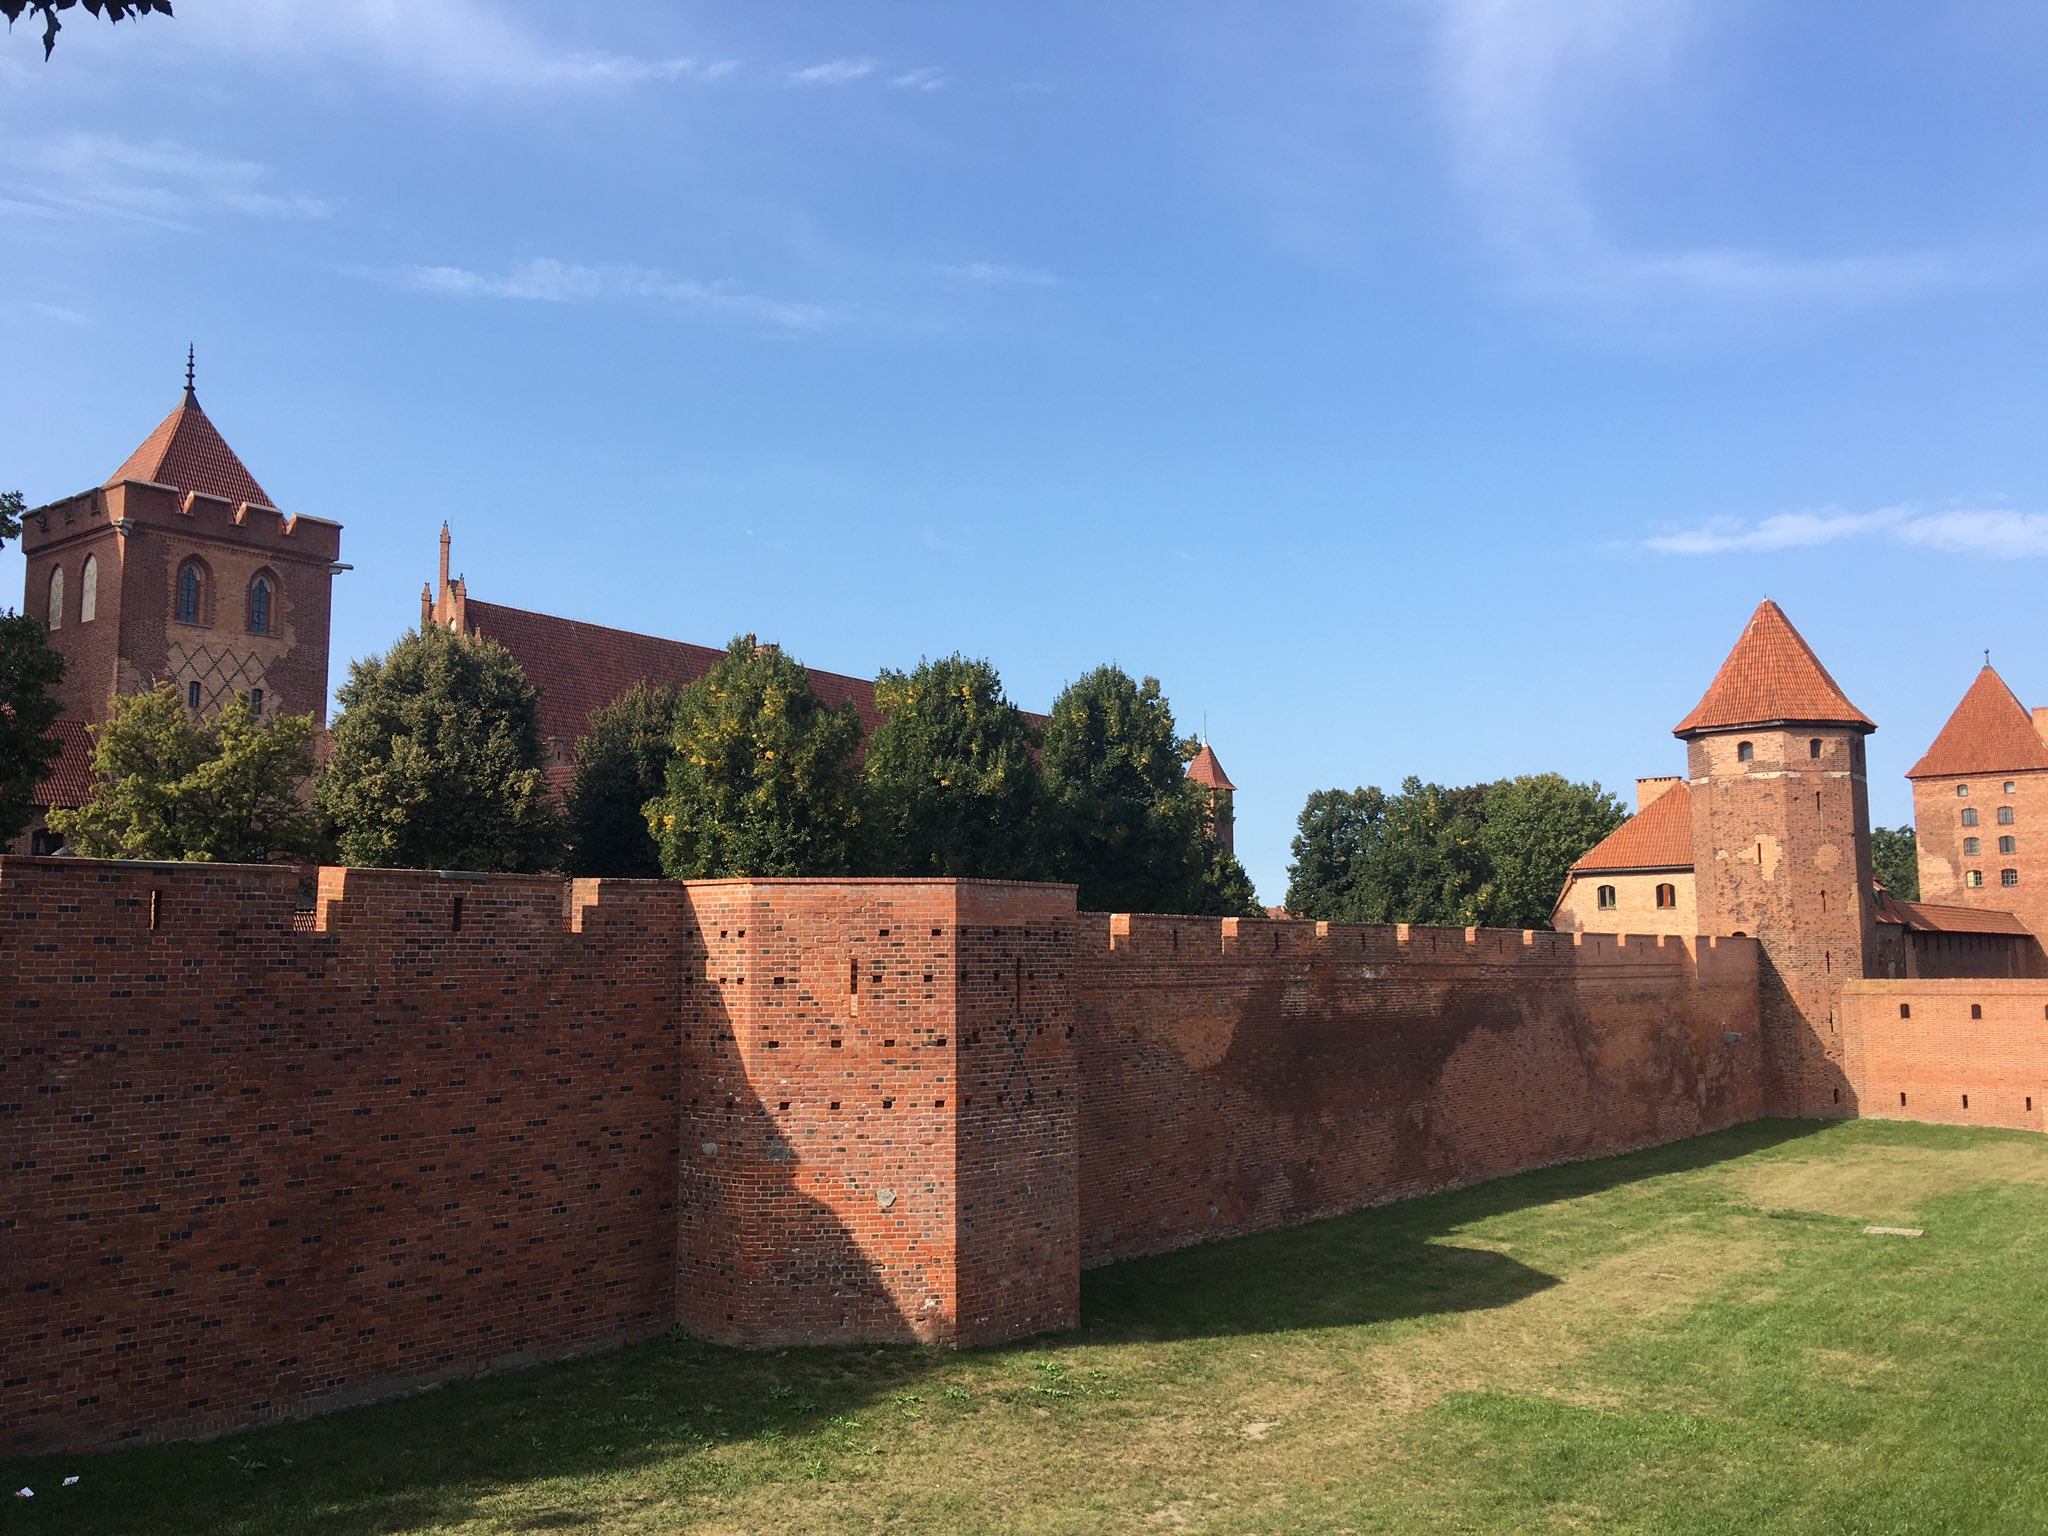 Odyssey Poland 2018, Castle of the Teutonic Order in Malbork is a 13th-century Teutonic castle and fortress located near the town of Malbork. It is the largest castle in the world measured by land area and a UNESCO World Heritage Site. https://t.co/7bSFVnSWo2